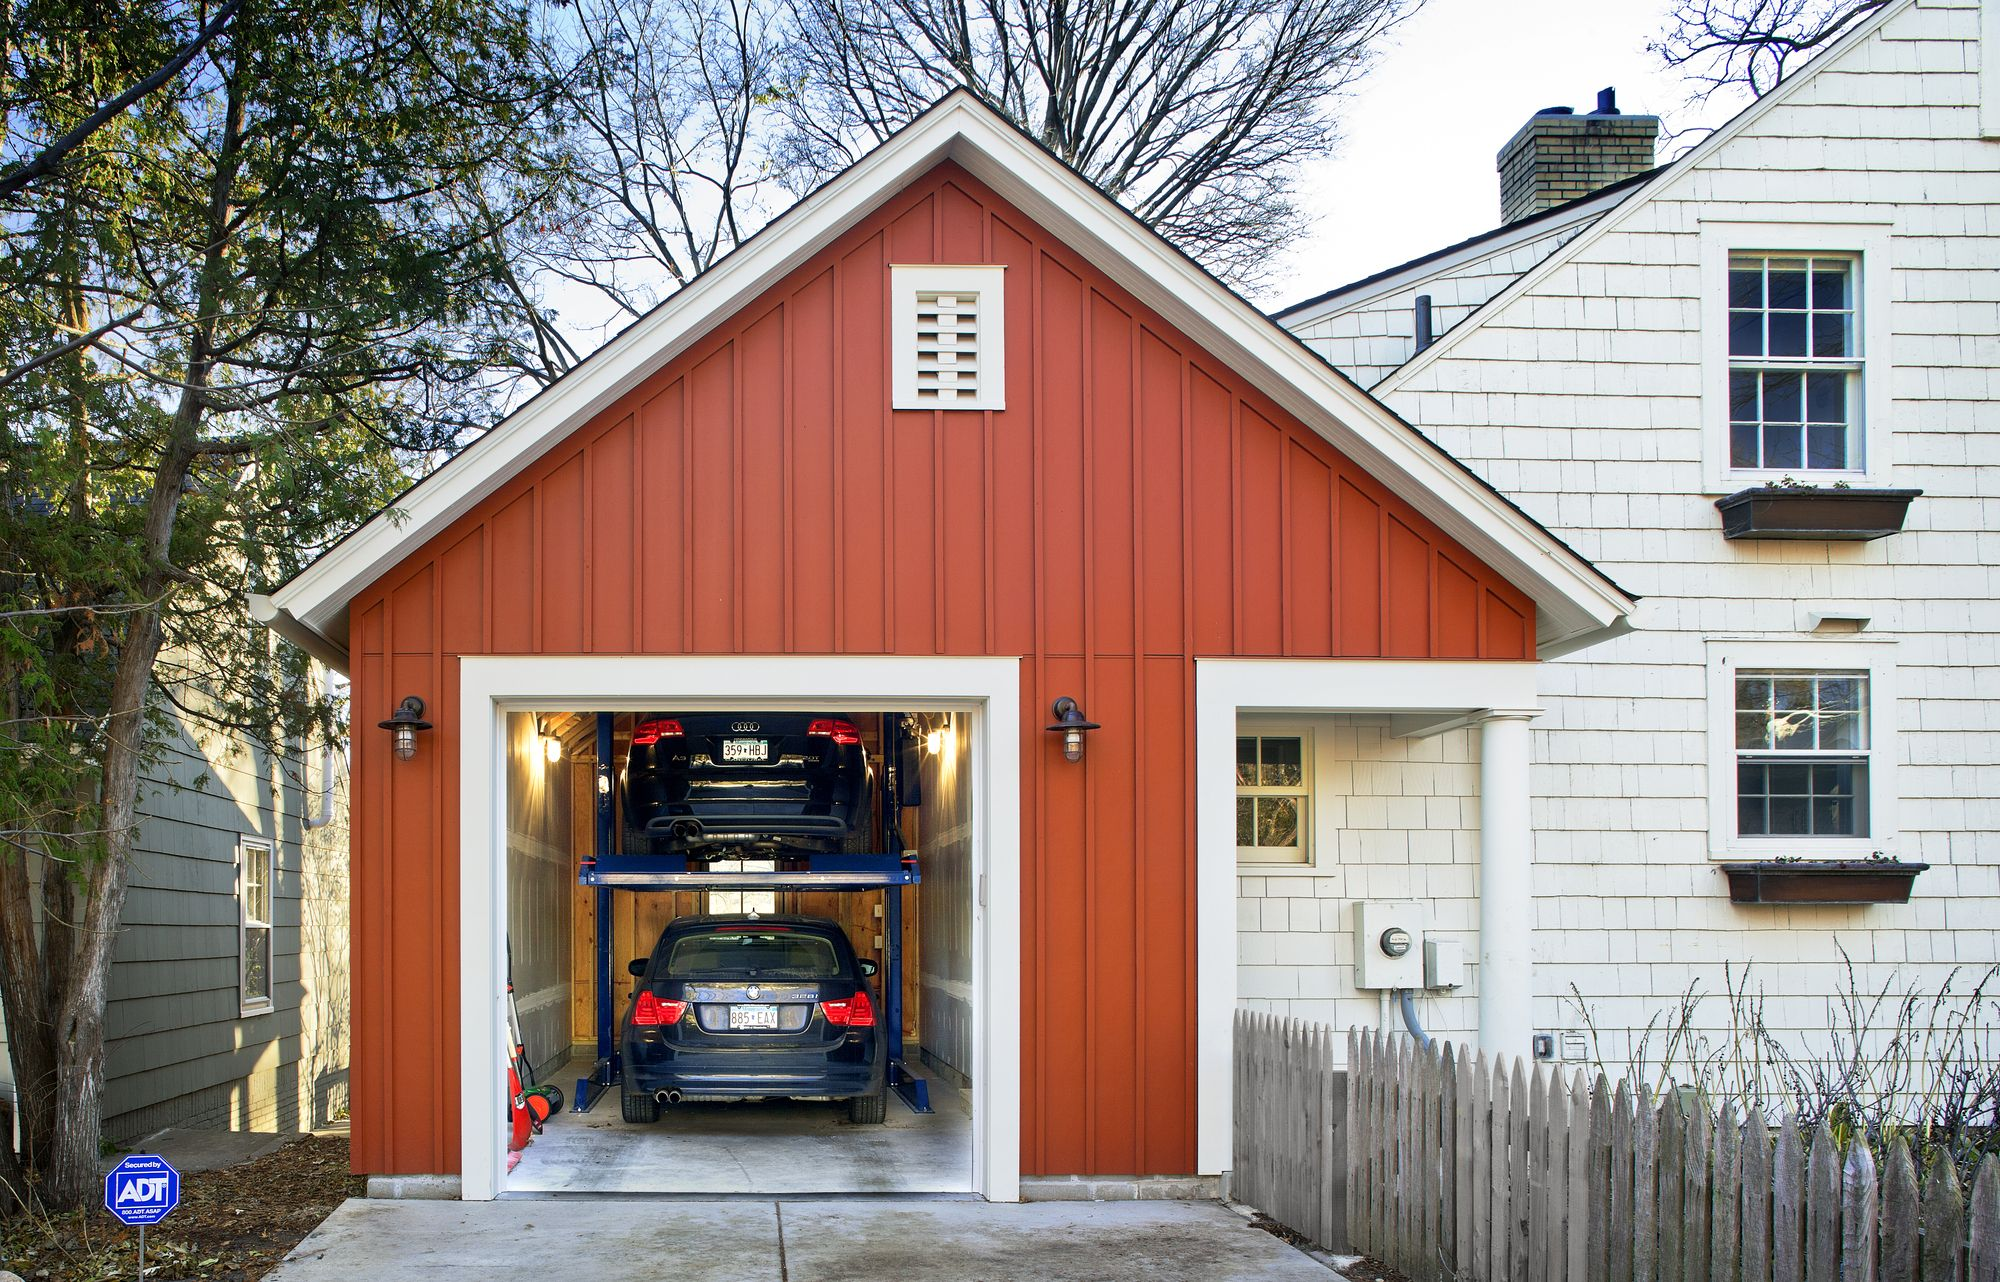 nice small garage plans. Steel hydraulic lift along with a ridge beam and rafters roof construction  makes two car garage possible in small footprint Everyday solutions Garage is built up instead of out Car